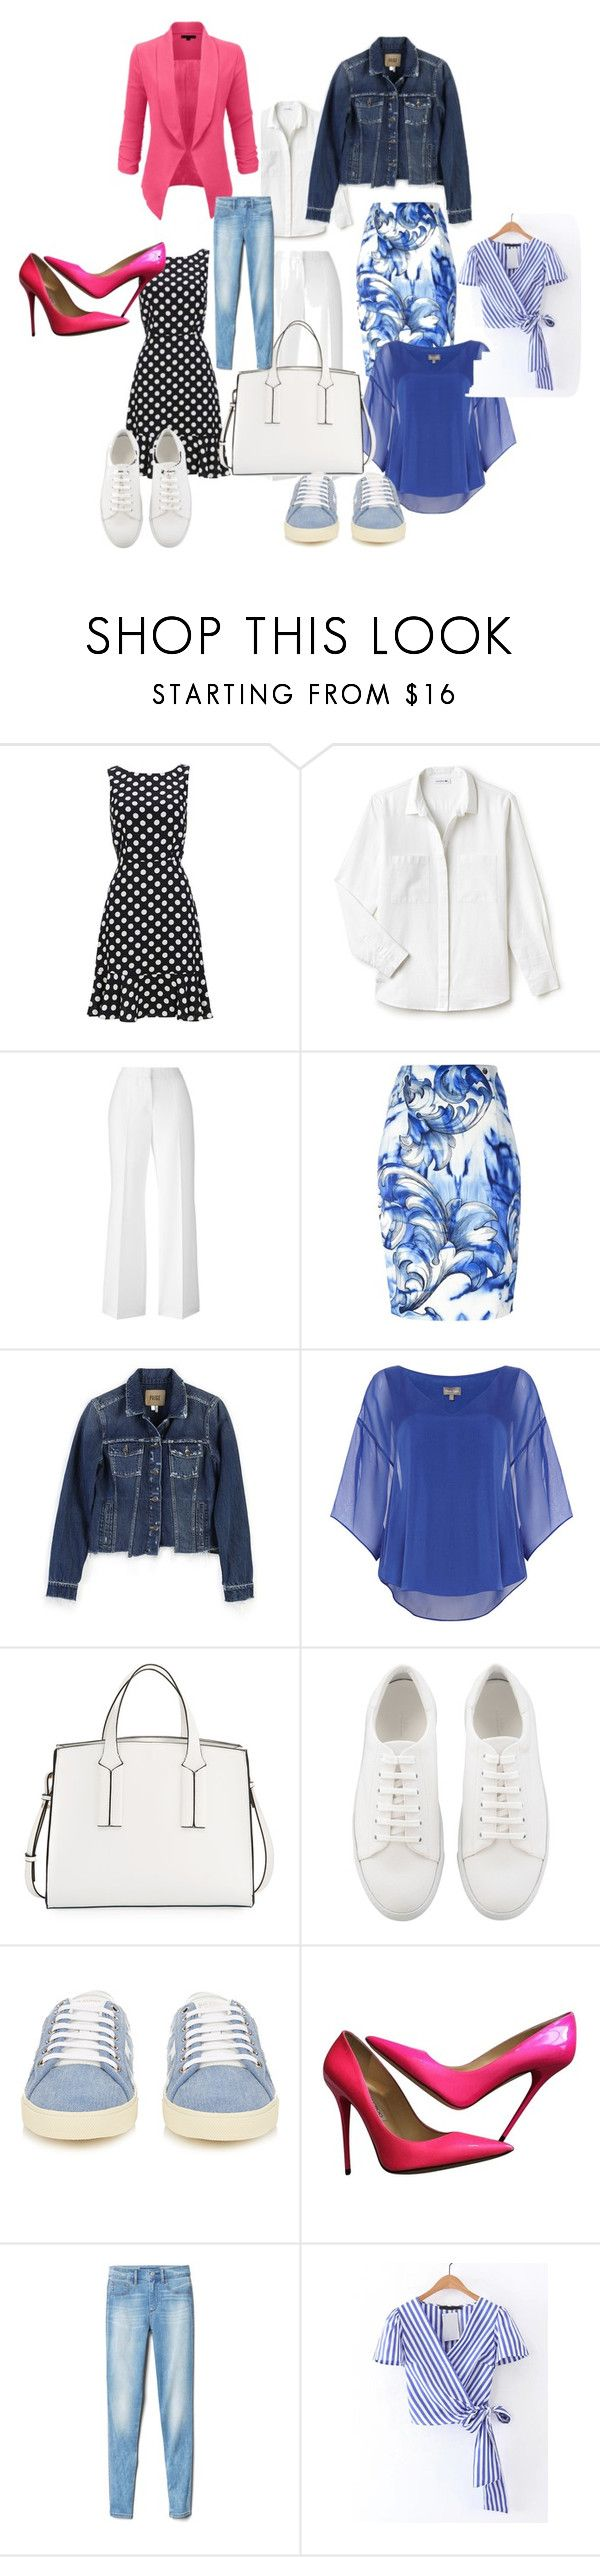 garderobeplanning by jeanet-locht on Polyvore featuring mode, Phase Eight, Lacoste, Paige Denim, Versace, Gap, Jimmy Choo, Yves Saint Laurent, French Connection and LE3NO